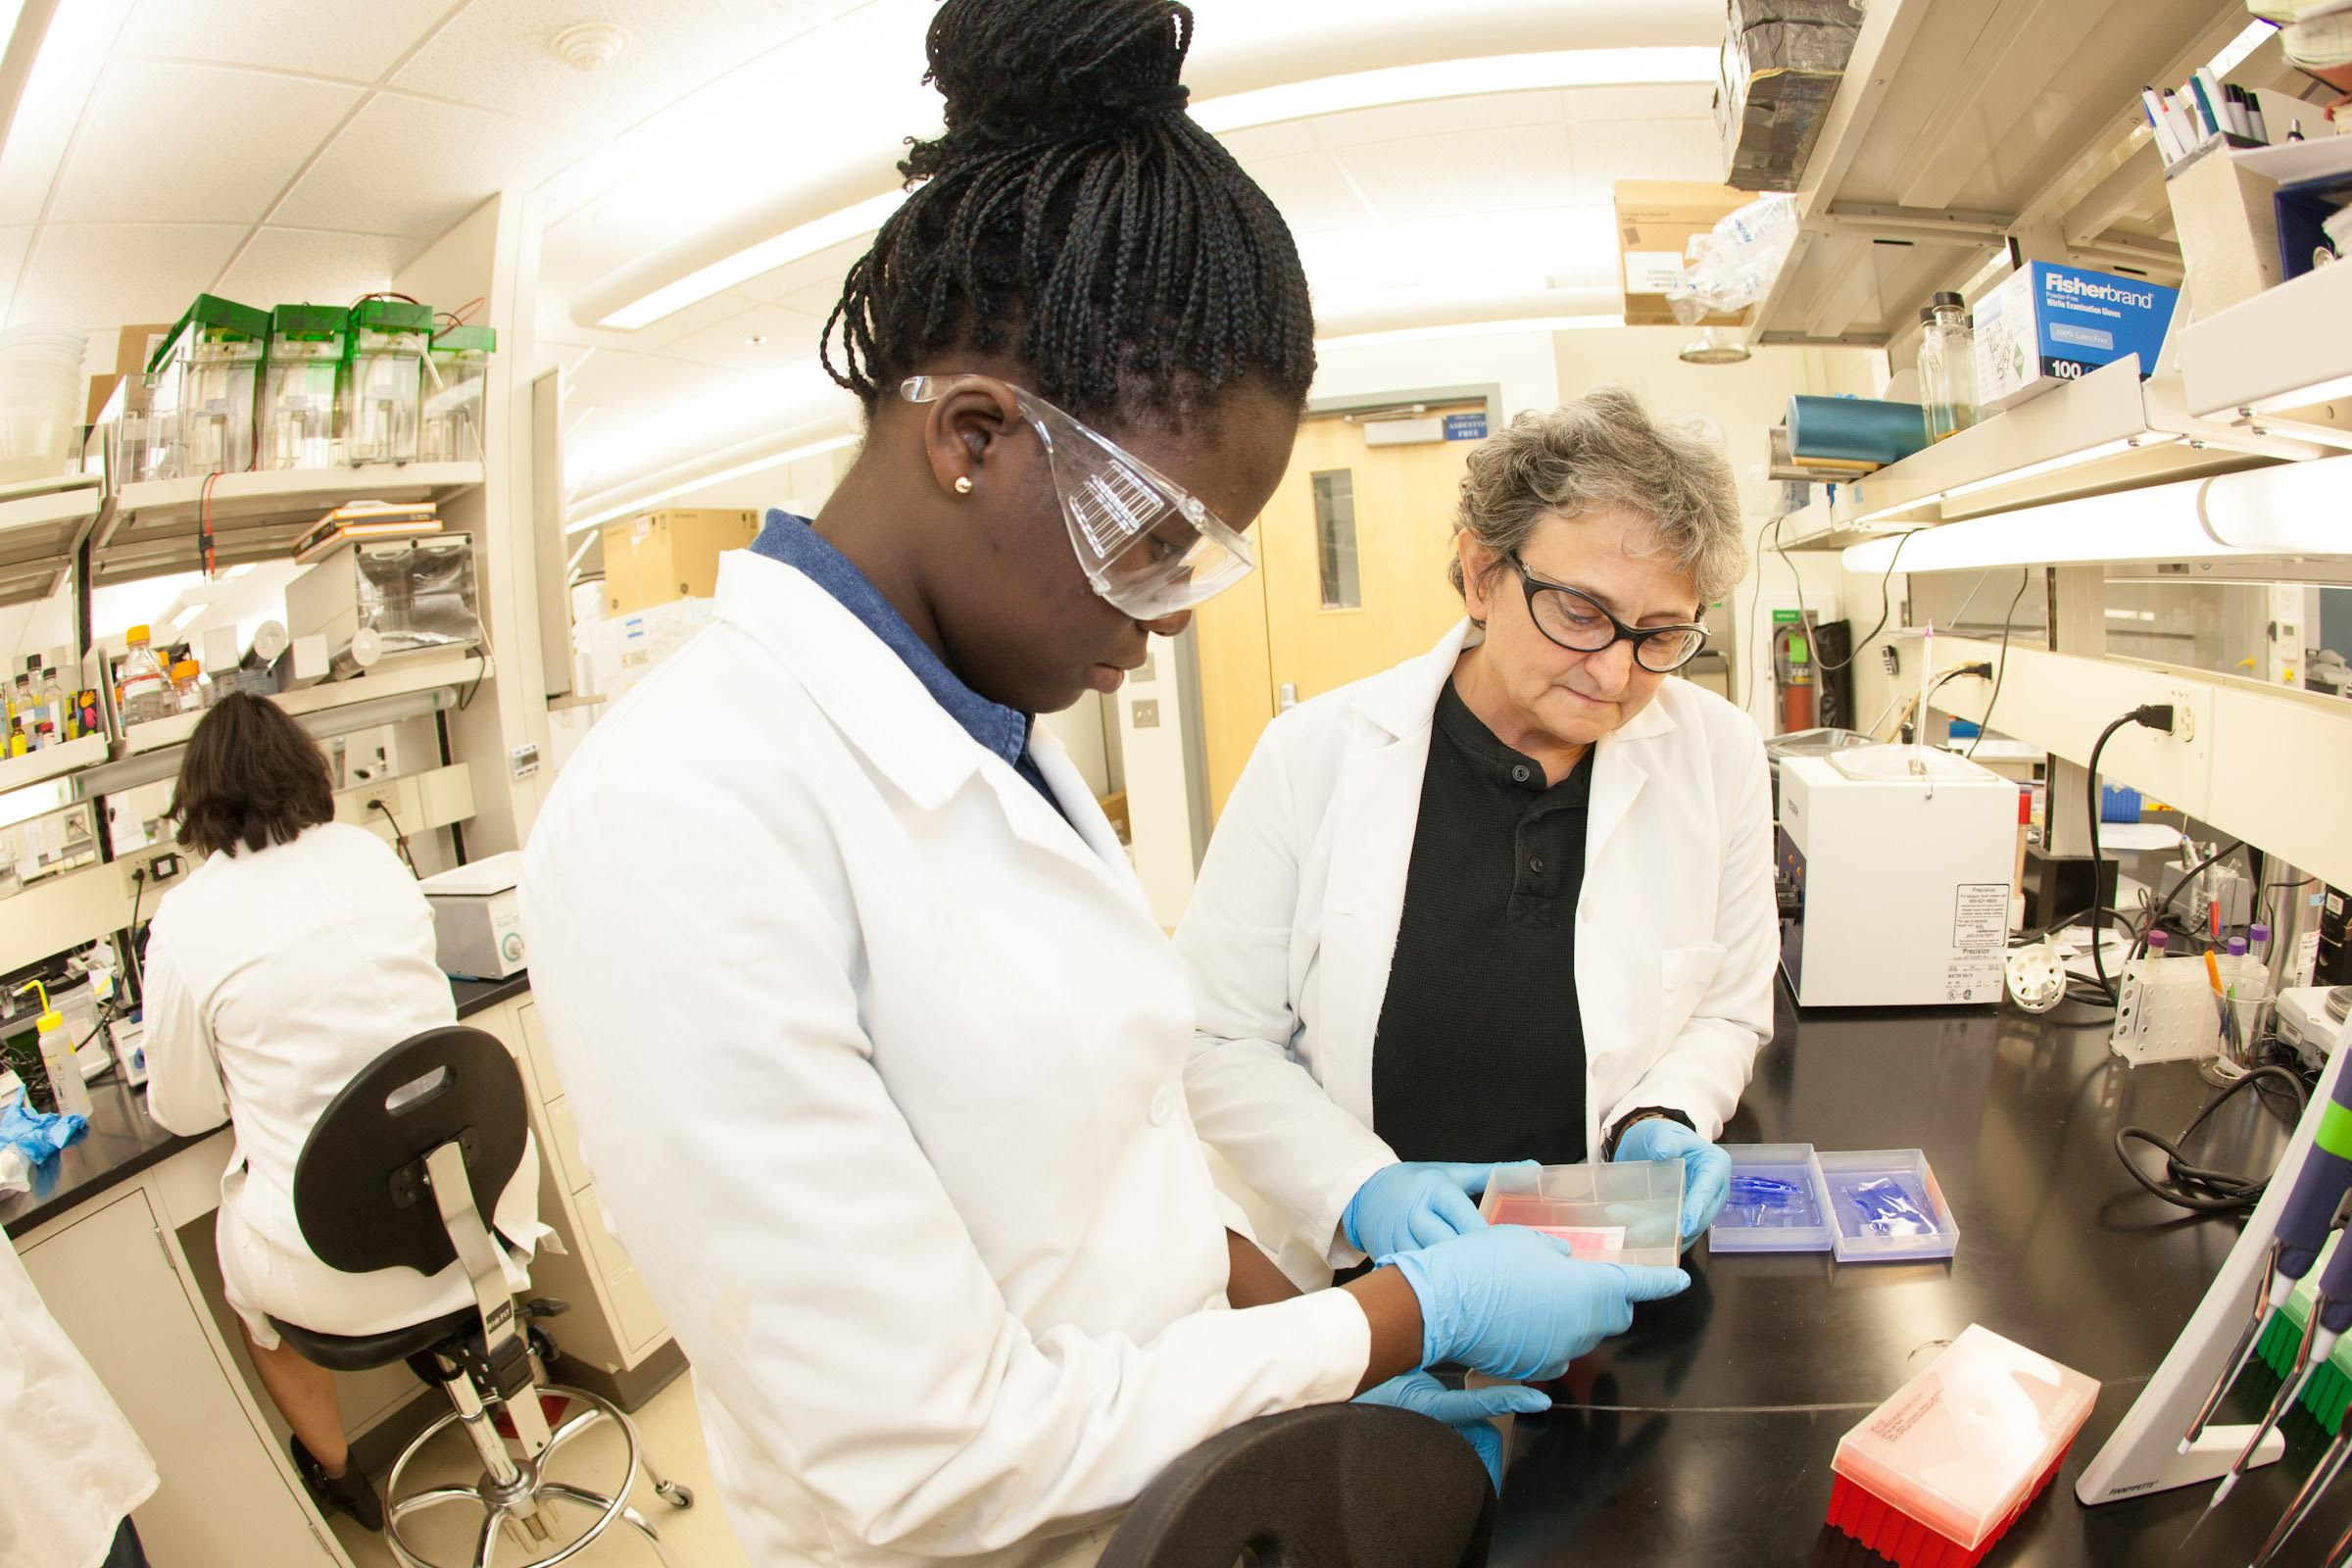 Ololade Olwale (left) and teacher, Paula Dell of Chicago look at samples taken in Antarctica at the Arcic health and Research Building.